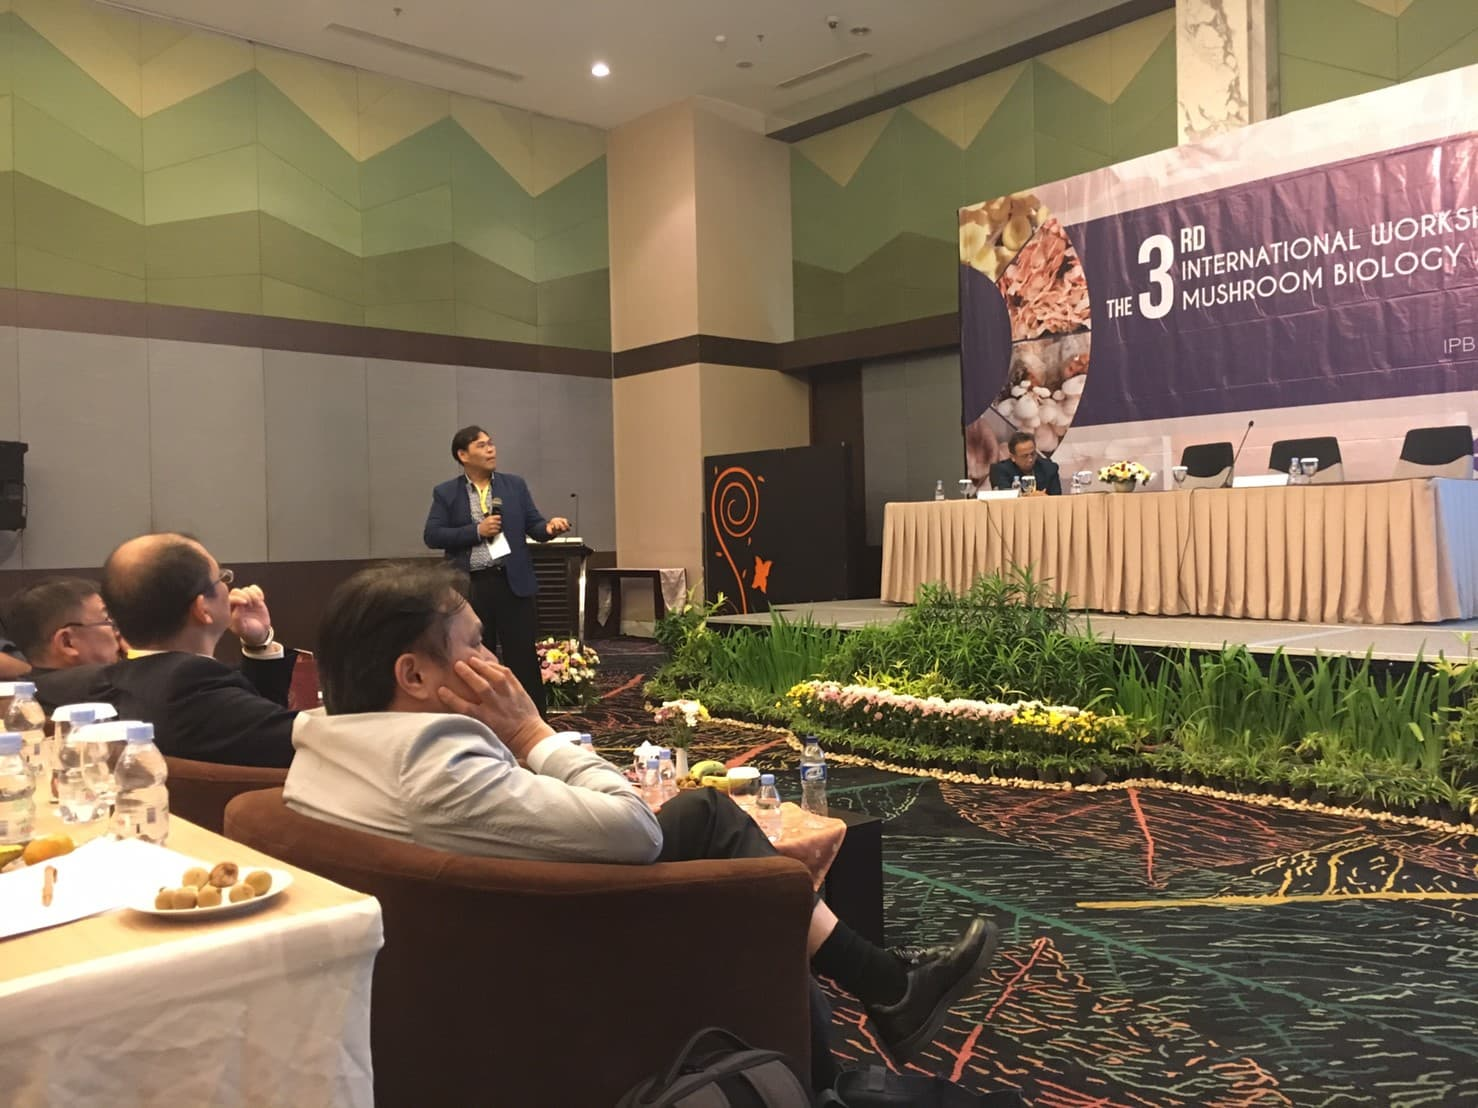 Assoc.Prof.Dr. Sophon Boonlue was an invited speaker at the International conference in Bogor, Indonesia